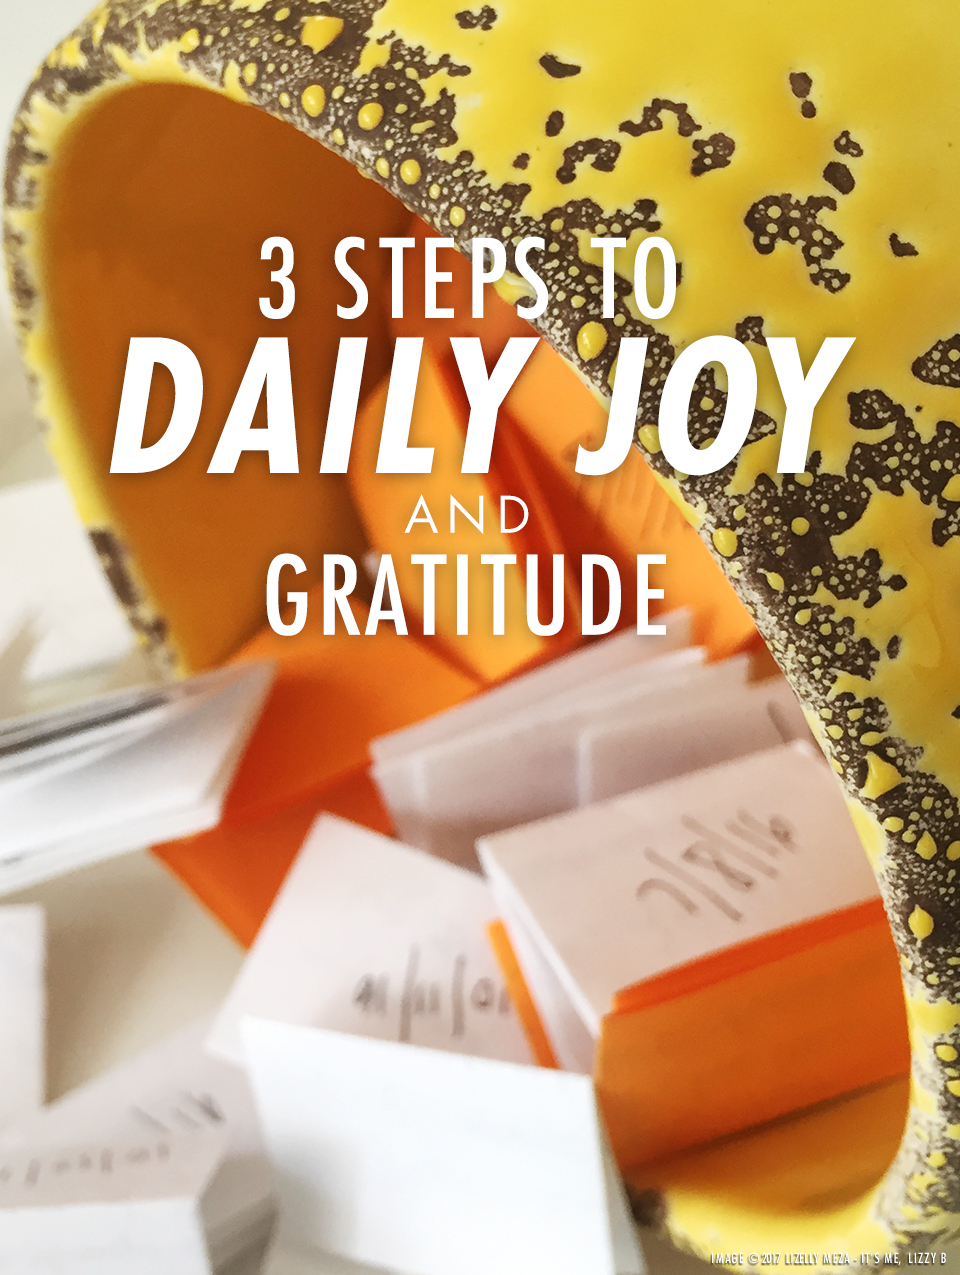 3 Steps to Daily Joy & Gratitude // It's Me, Lizzy B - Musings on Life, Business, & The Pursuit of Curiosity // Personal blog of Lizelly Meza